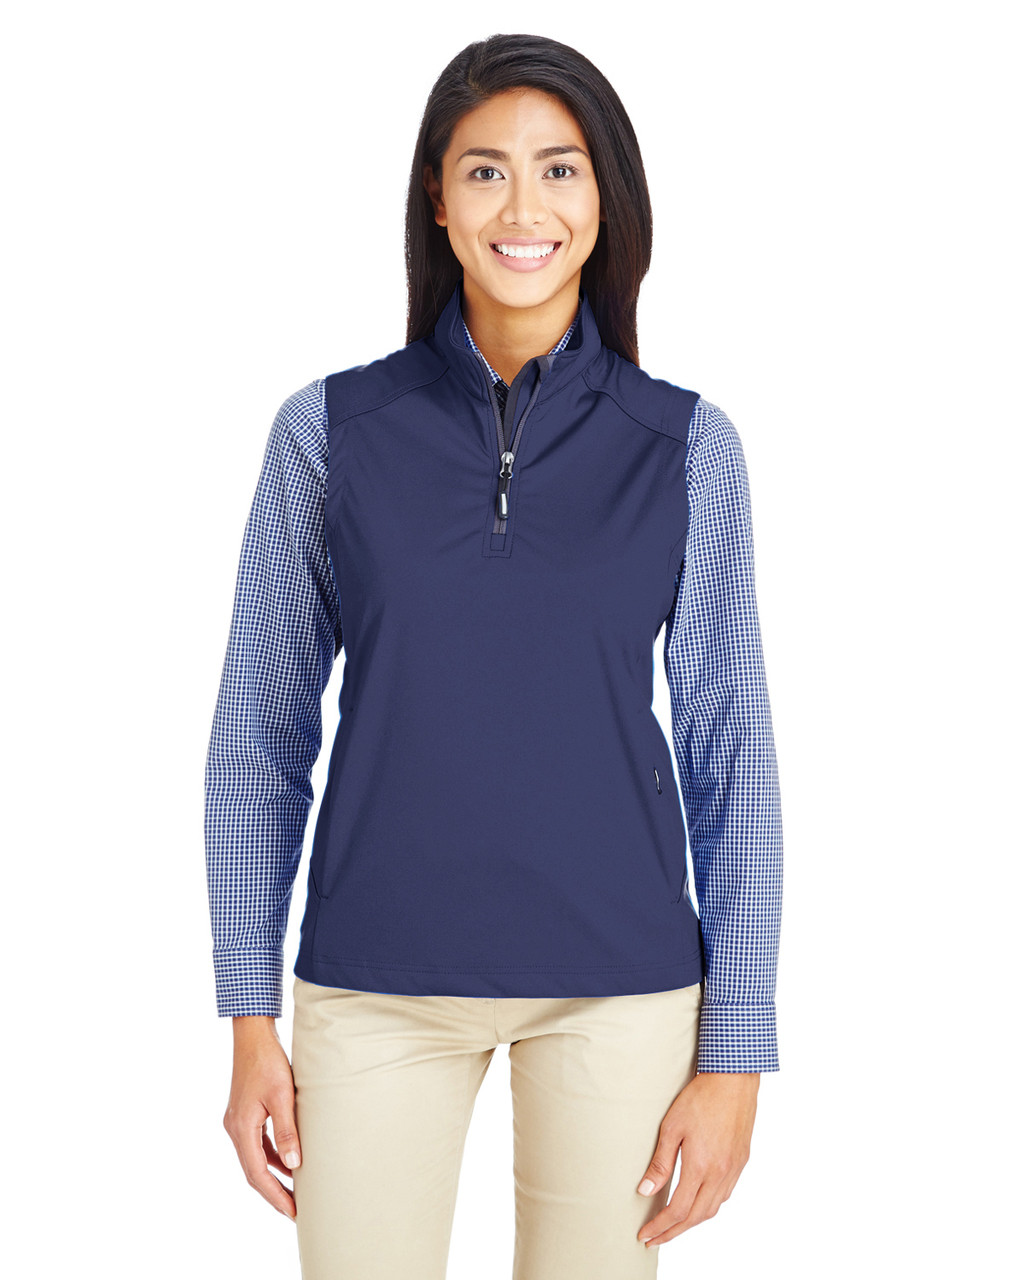 Classic Navy - CE709W Ash City - Core 365 Ladies' Techno Lite Three-Layer Knit Tech-Shell Quarter-Zip Vest | Blankclothing.ca